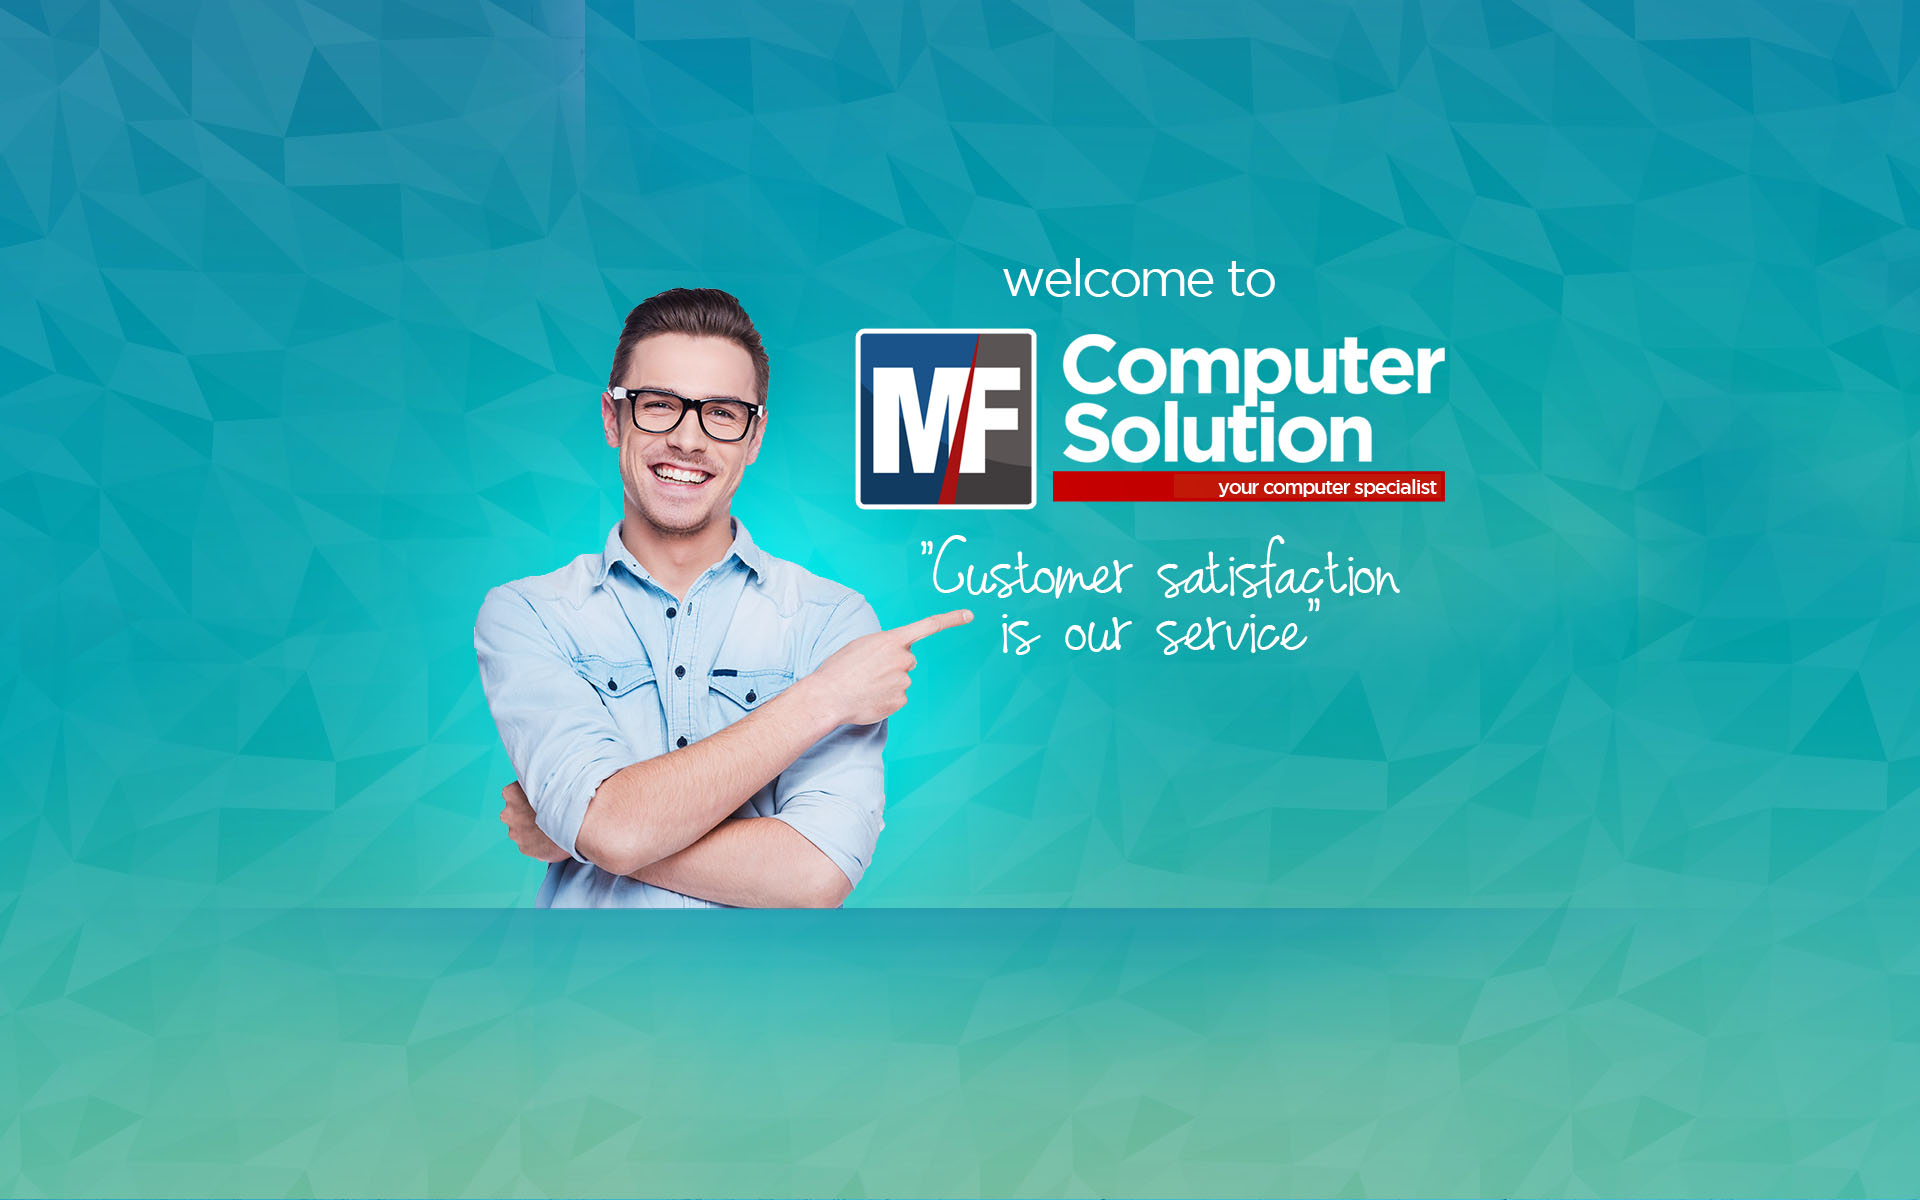 Welcome to MF Computer Solution